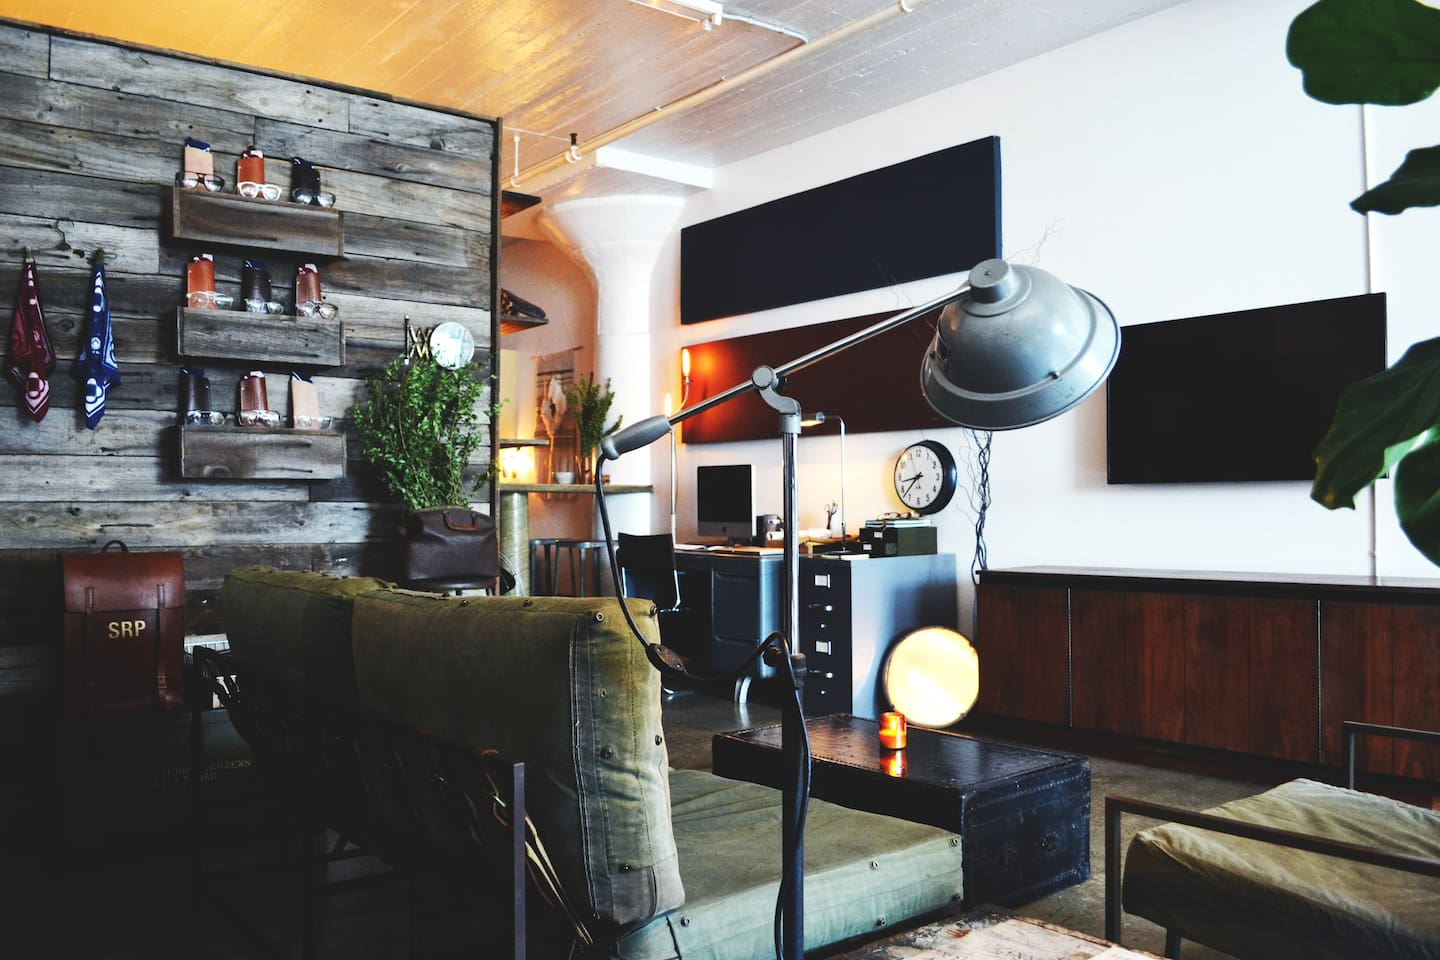 Living room complete with hand-built barn wood wall, one of a kind designer furniture/vintage pieces, and modern walnut credenza | Our loft includes high speed wifi  | Hulu Plus | Netflix | Amazon Instant Prime